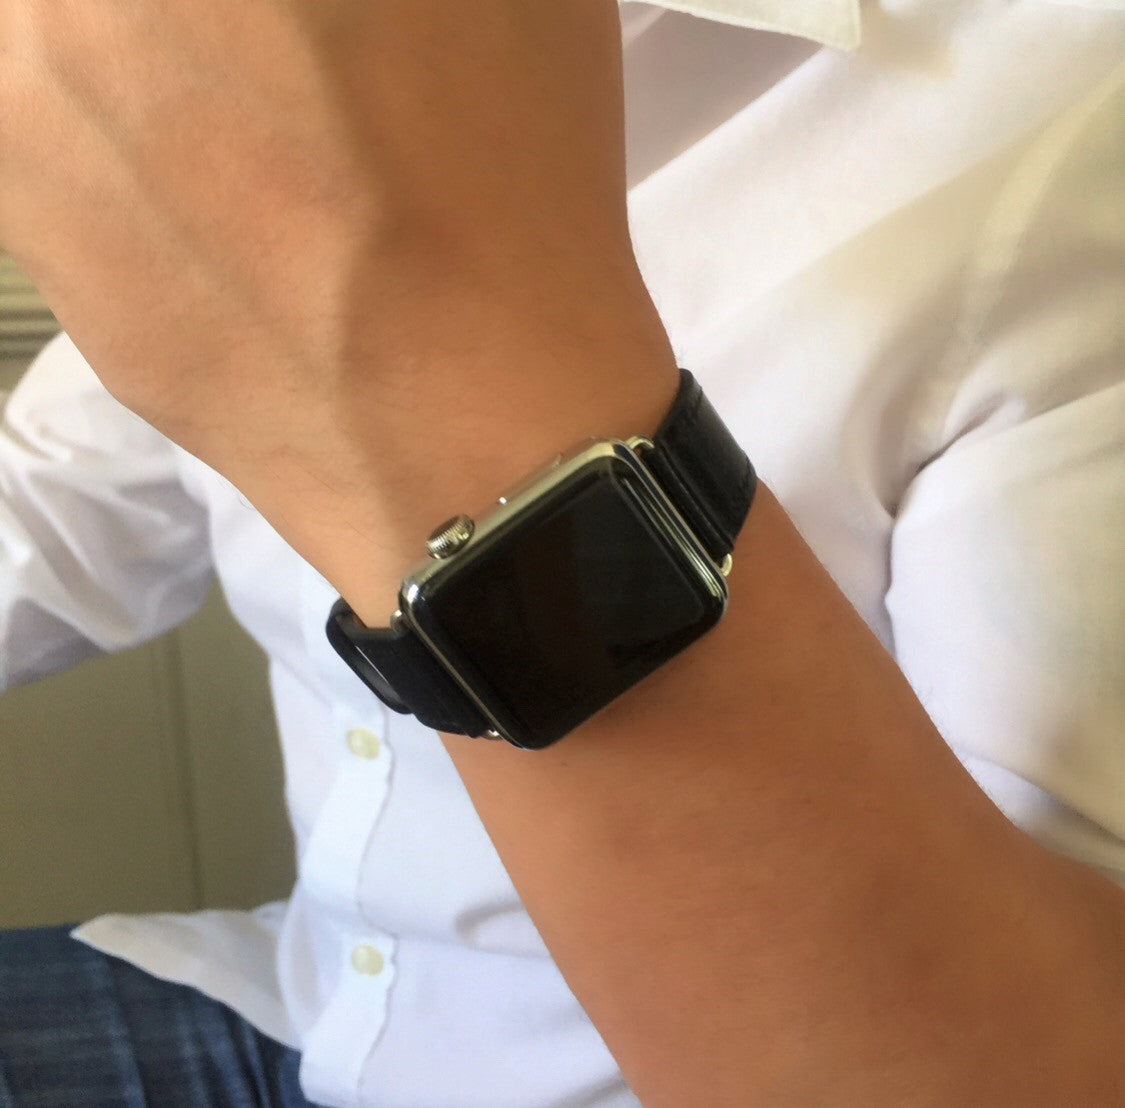 Juxli Home Black  Apple Watch Leather Replacement Single Tour Band worn by man with White Shirt